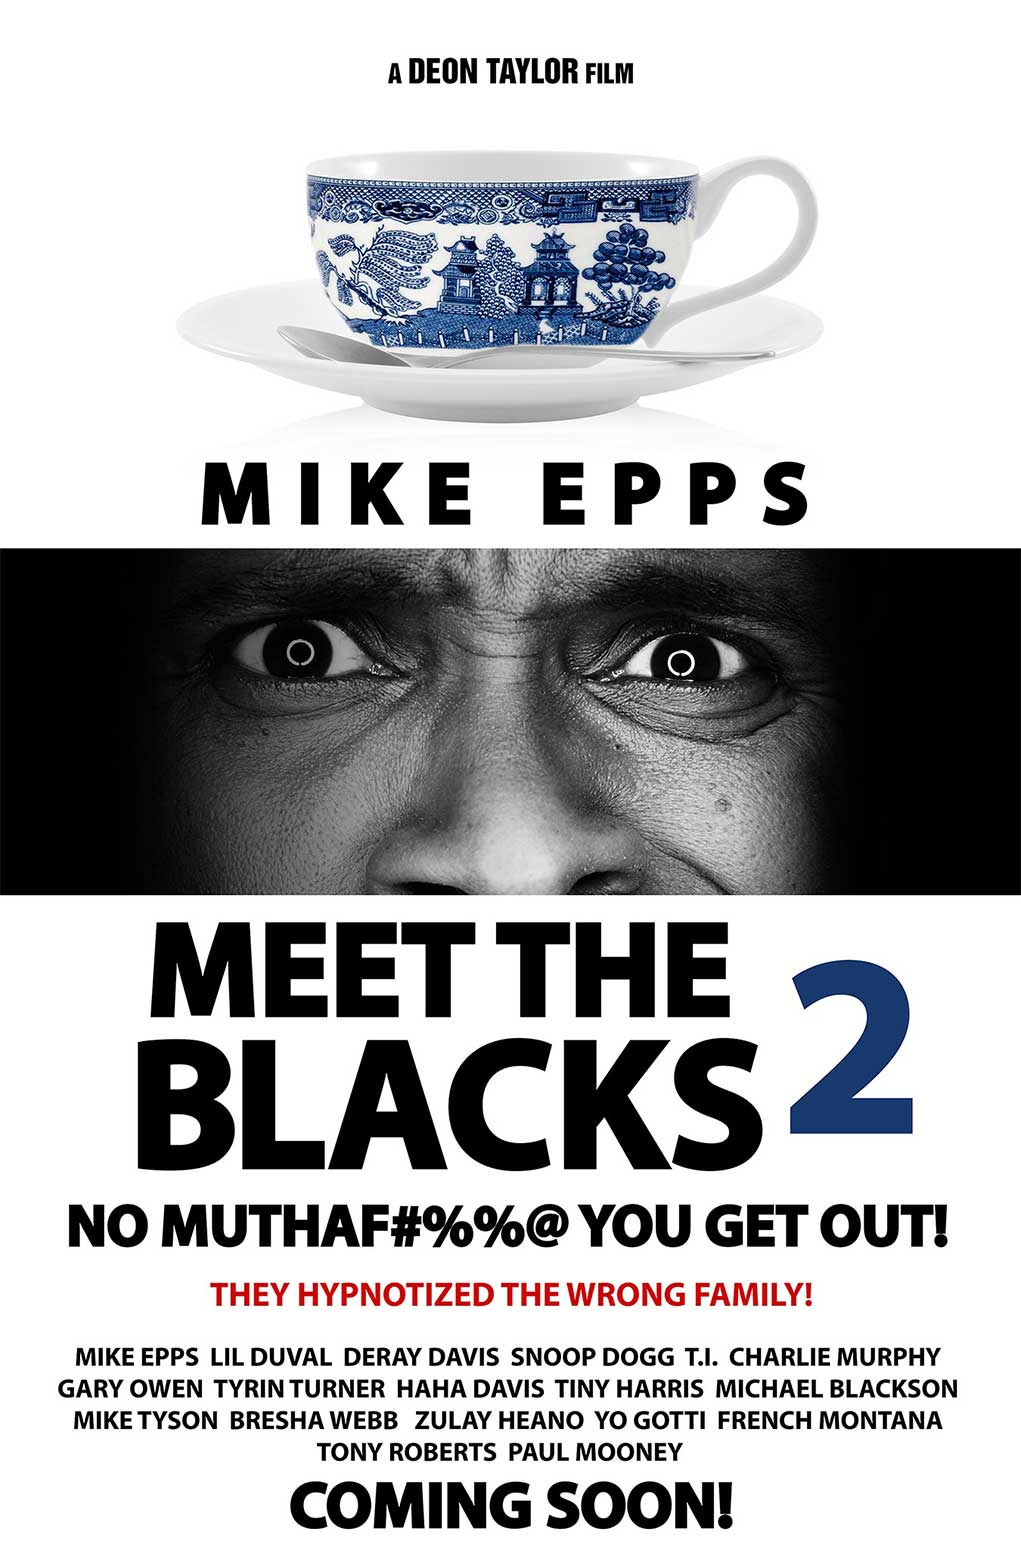 Meet the Blacks sequal Get Out Spoof